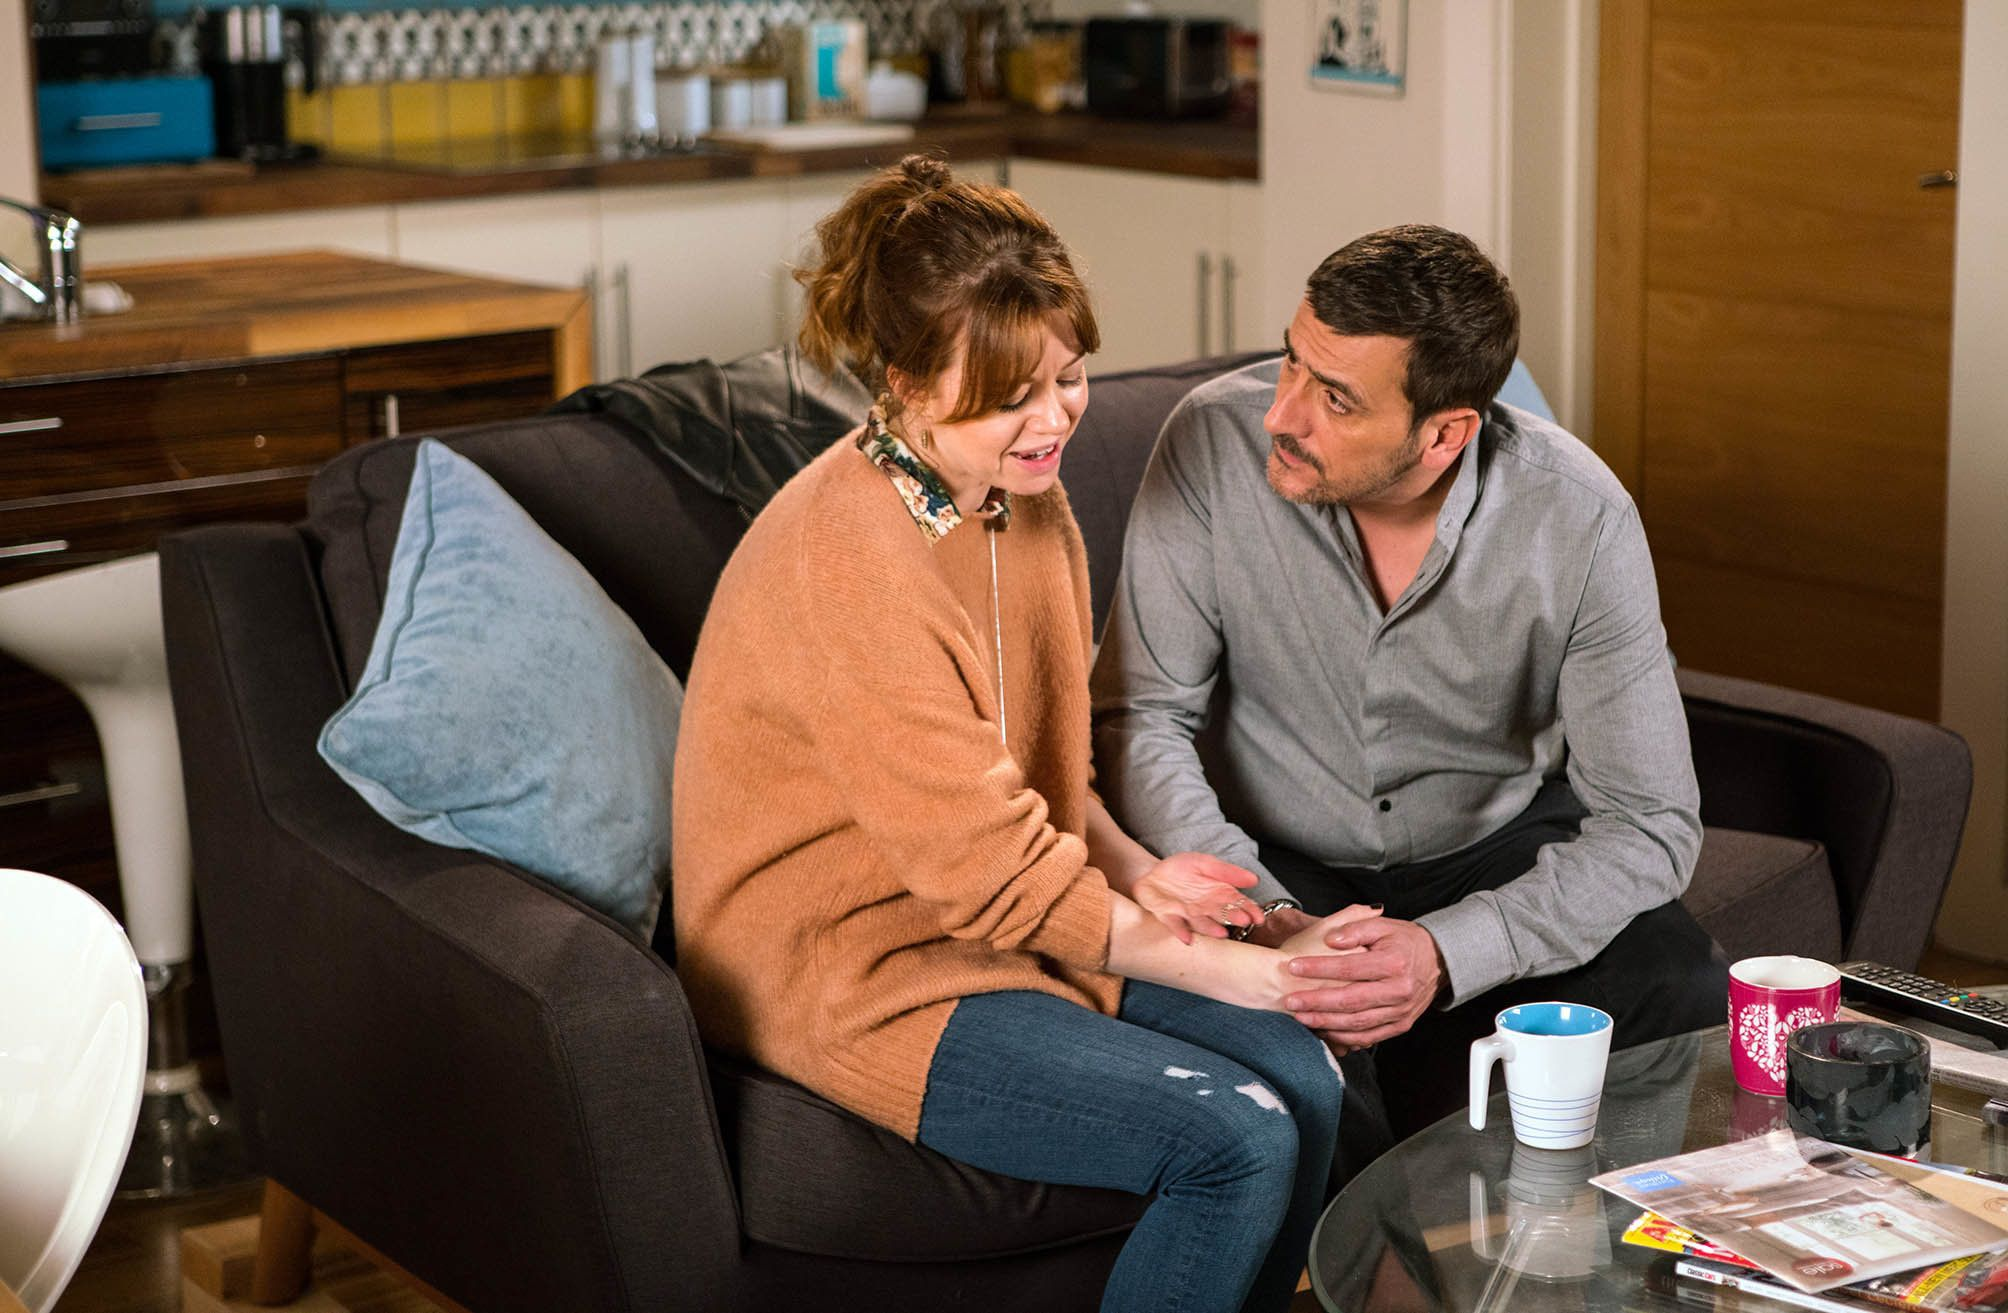 'Coronation Street' Spoiler! Is Toyah And Peter's Secret Affair About To Be